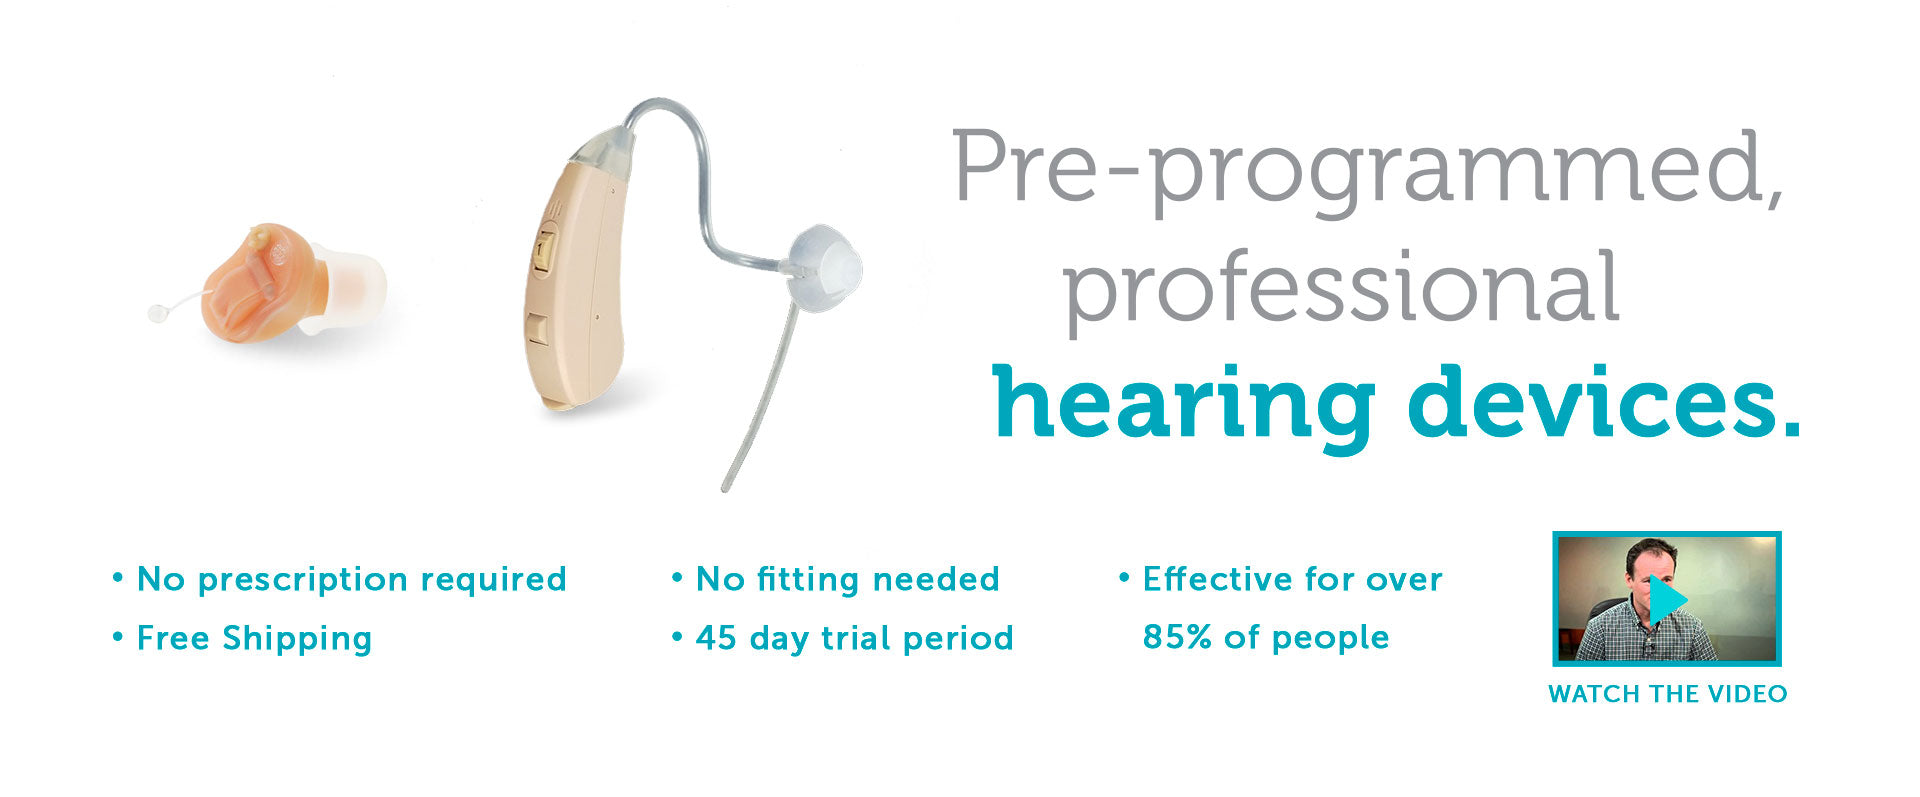 simple ear premium, affordable hearing aids